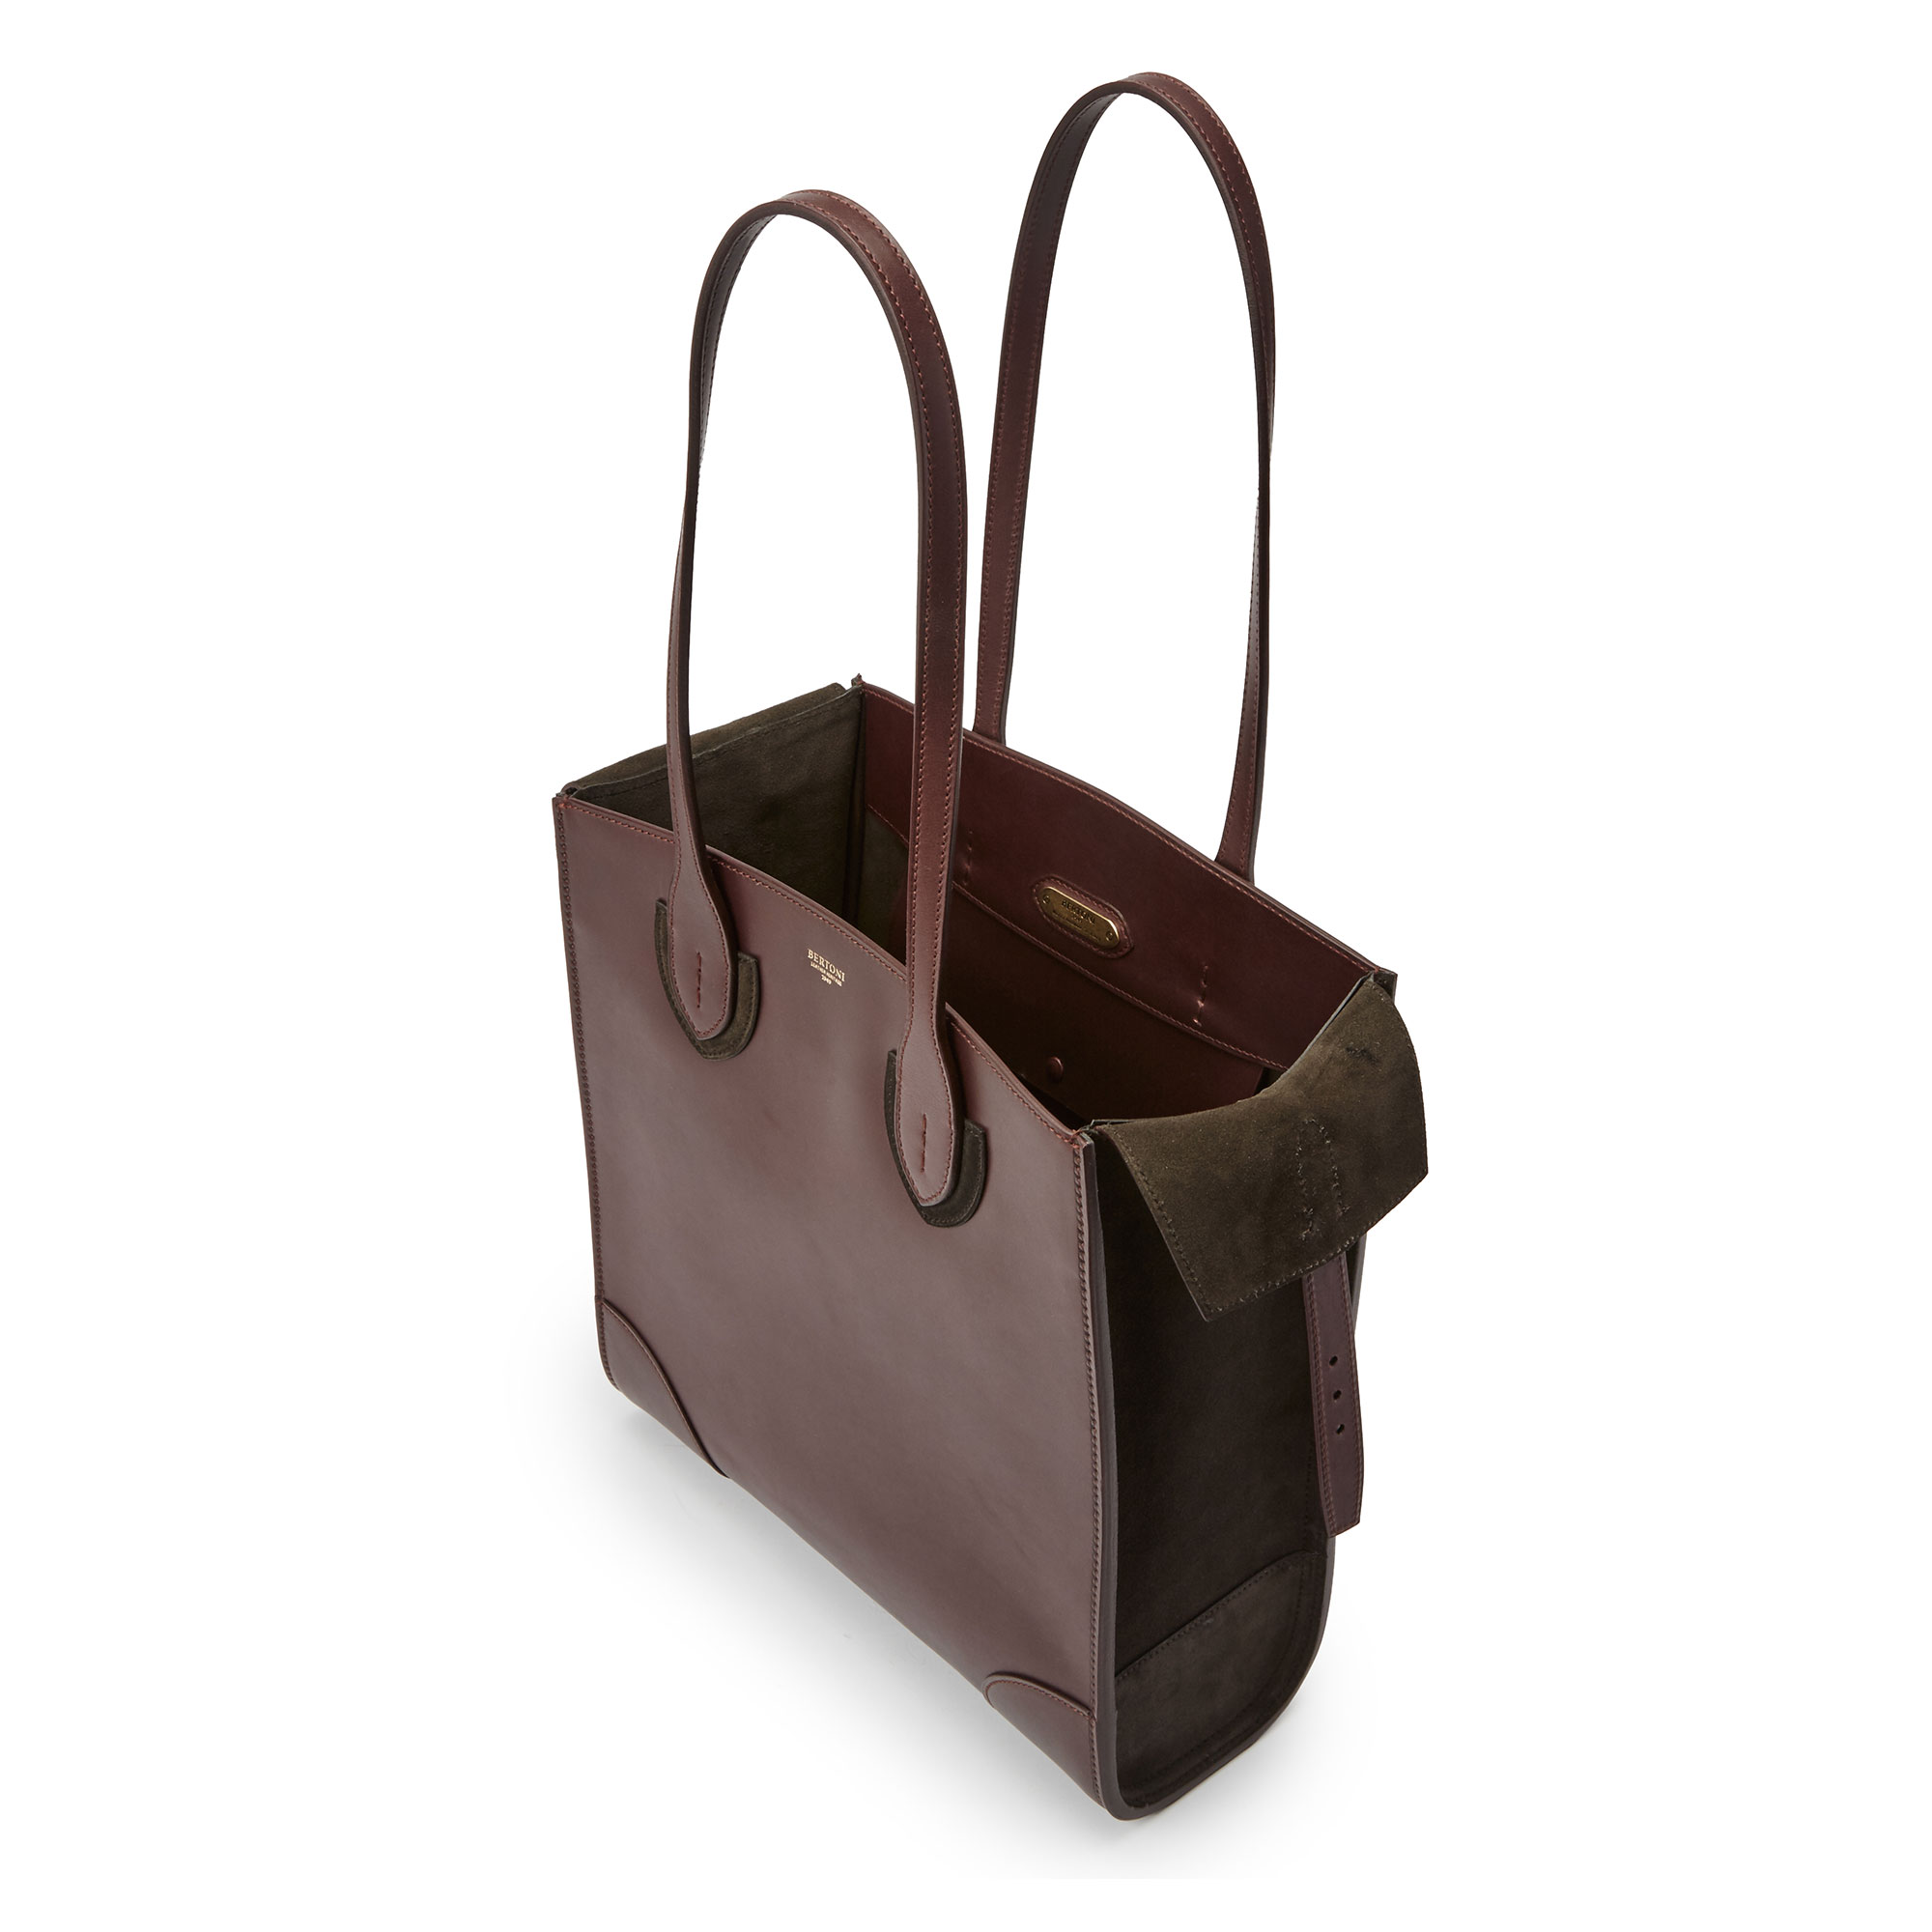 Darcy-Tote-bordeaux-french-calf-bag-Bertoni-1949_03